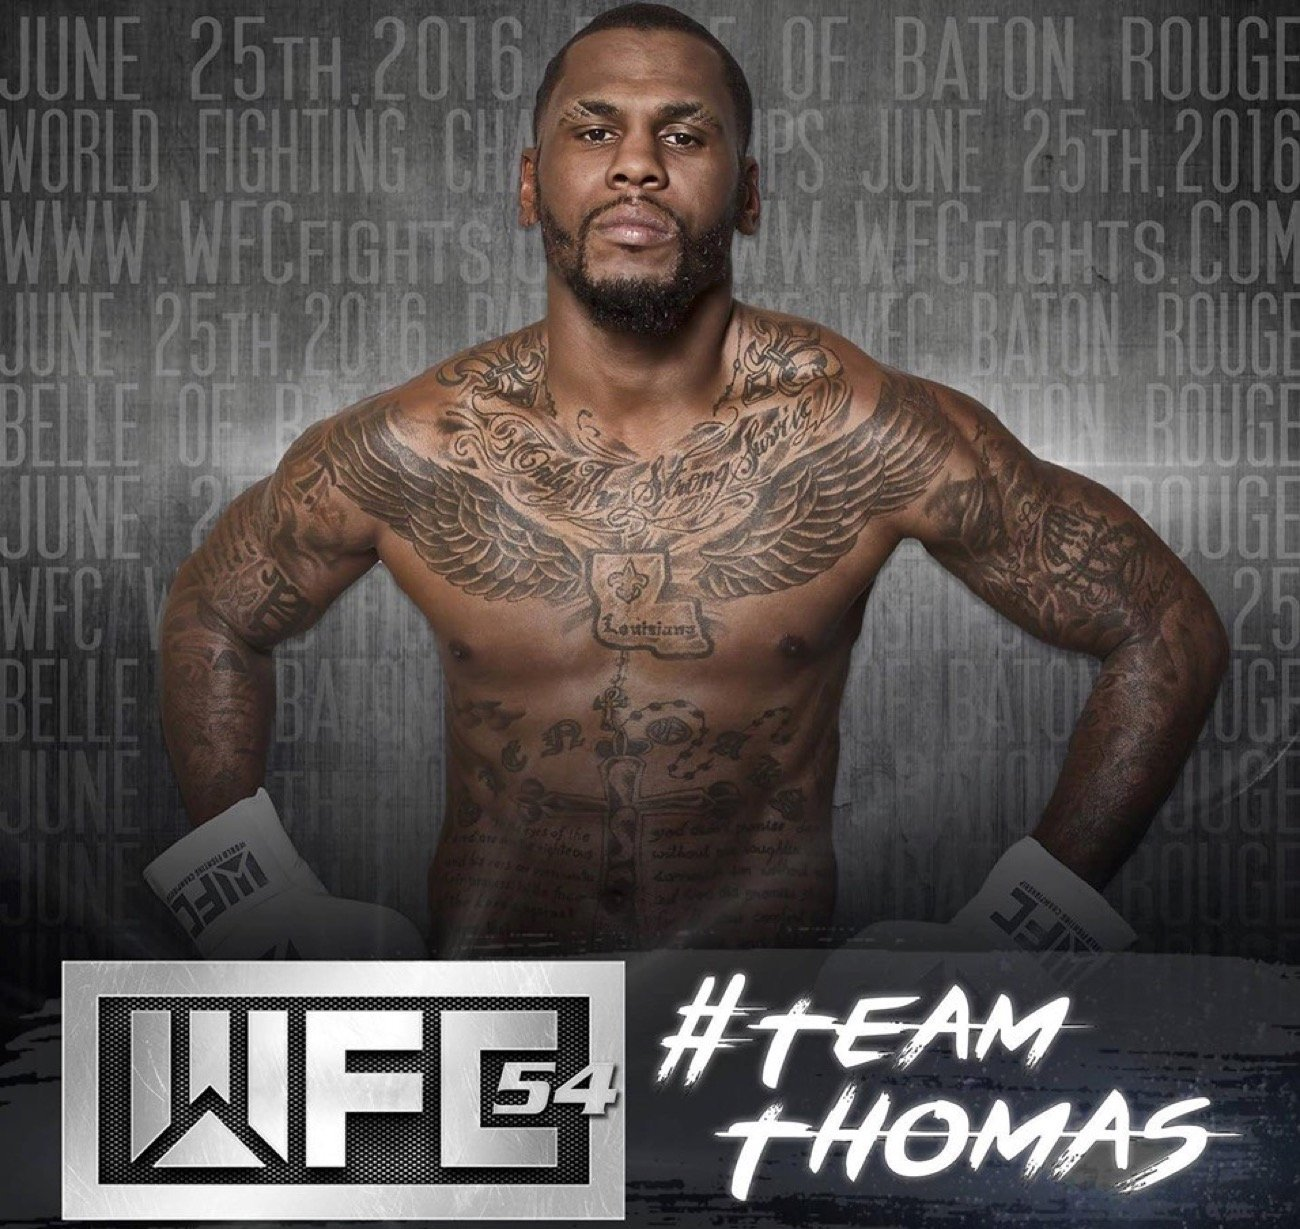 -  A long-time member of the World Fighting Championships family lost his life over Labor Day weekend.  Justin Thomas, who fought 16 of his 21 fights at the Belle of Baton Rouge Casino with WFC, was shot leaving a bar in his hometown.